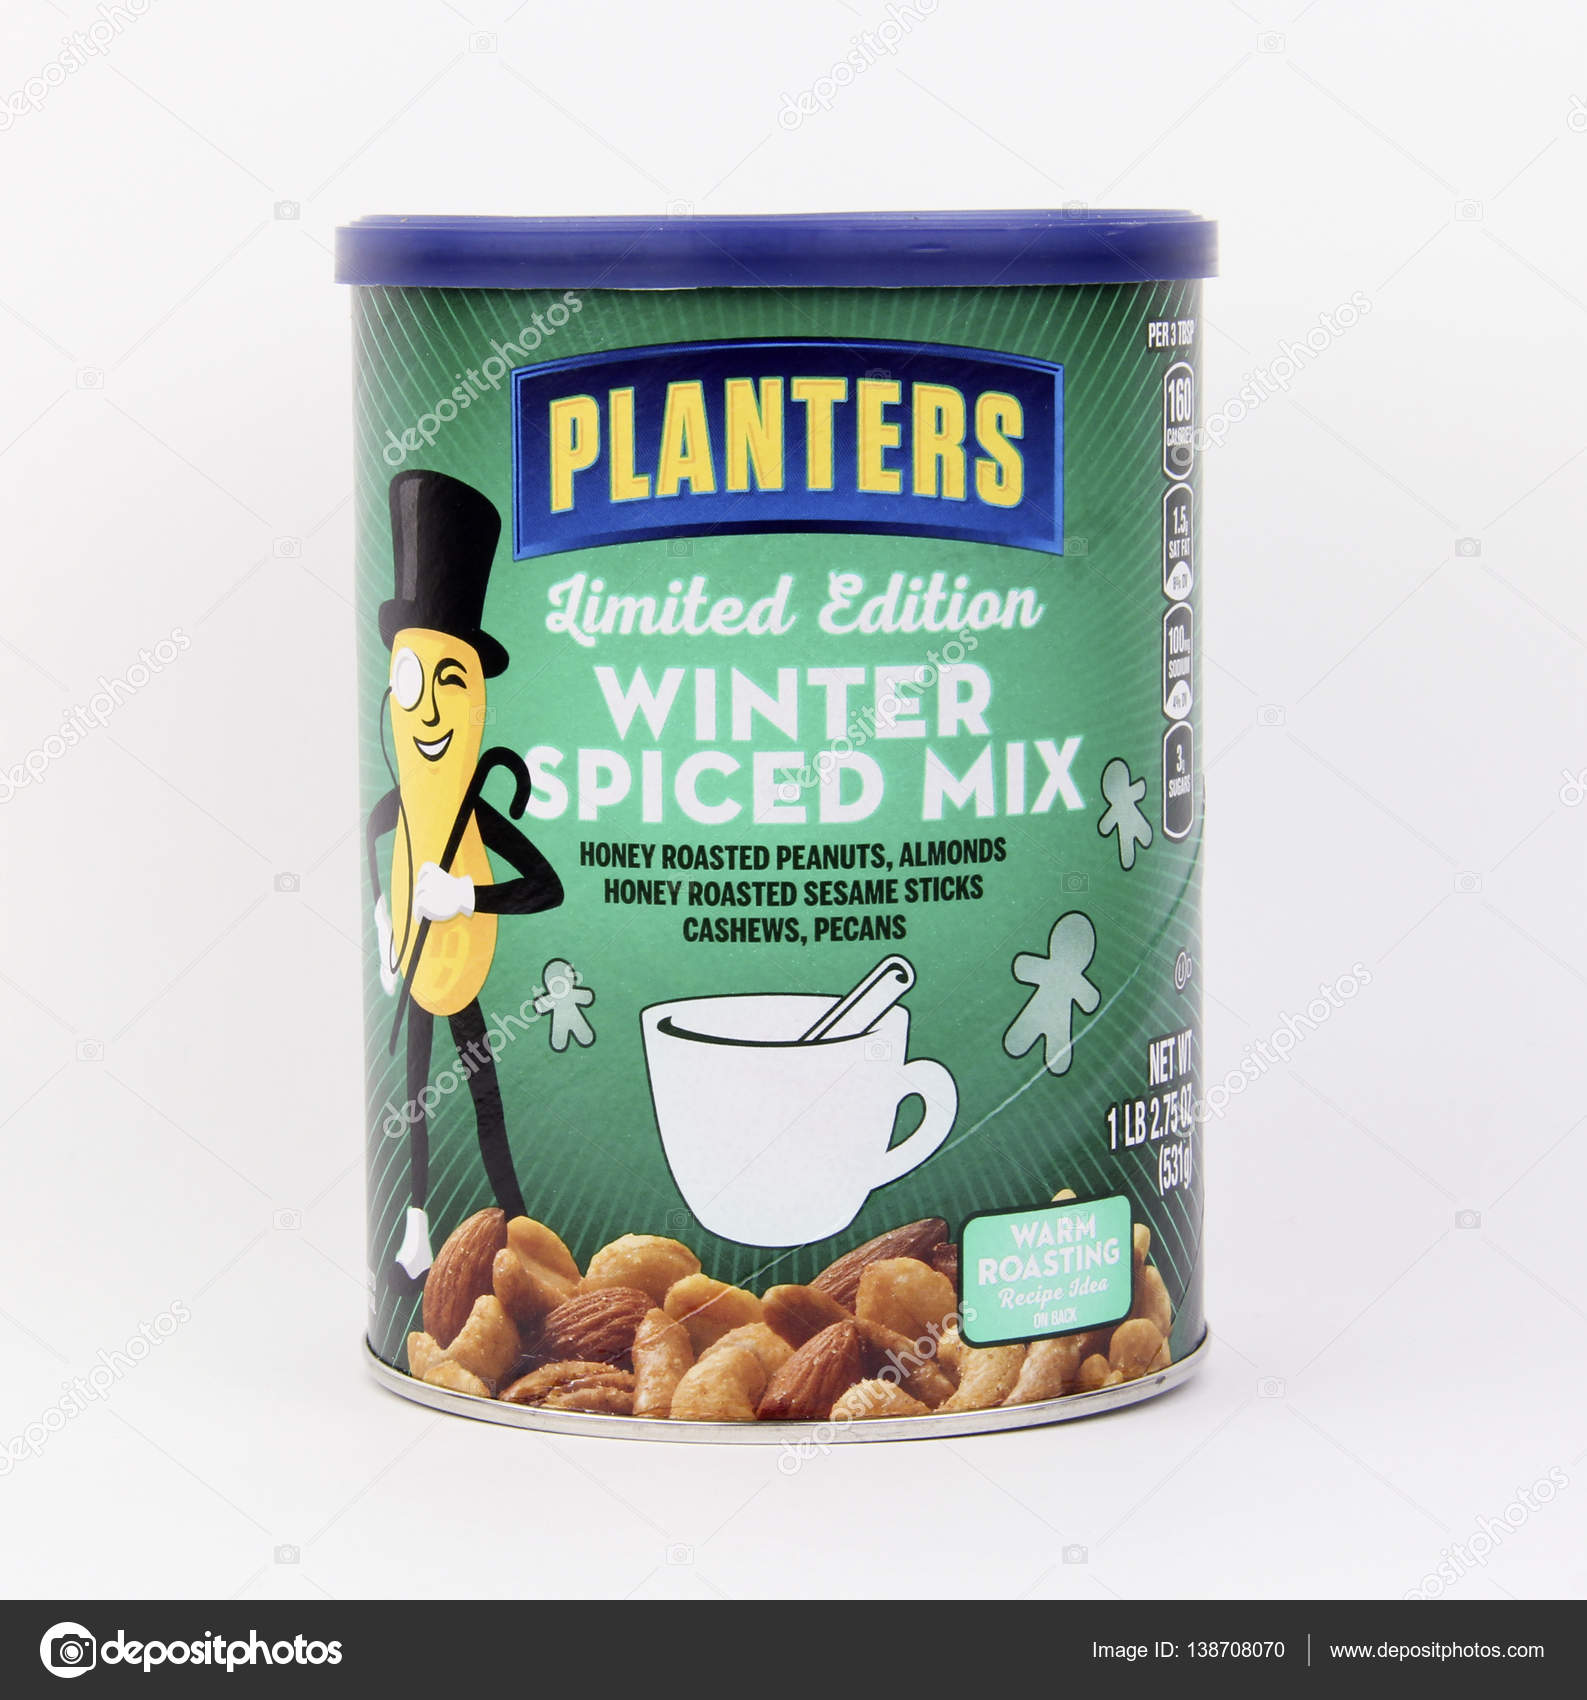 grocery uts almonds planters nuts product cashew planter snacks cashews mix mixed almond mixes oz select meijer trail pecans com